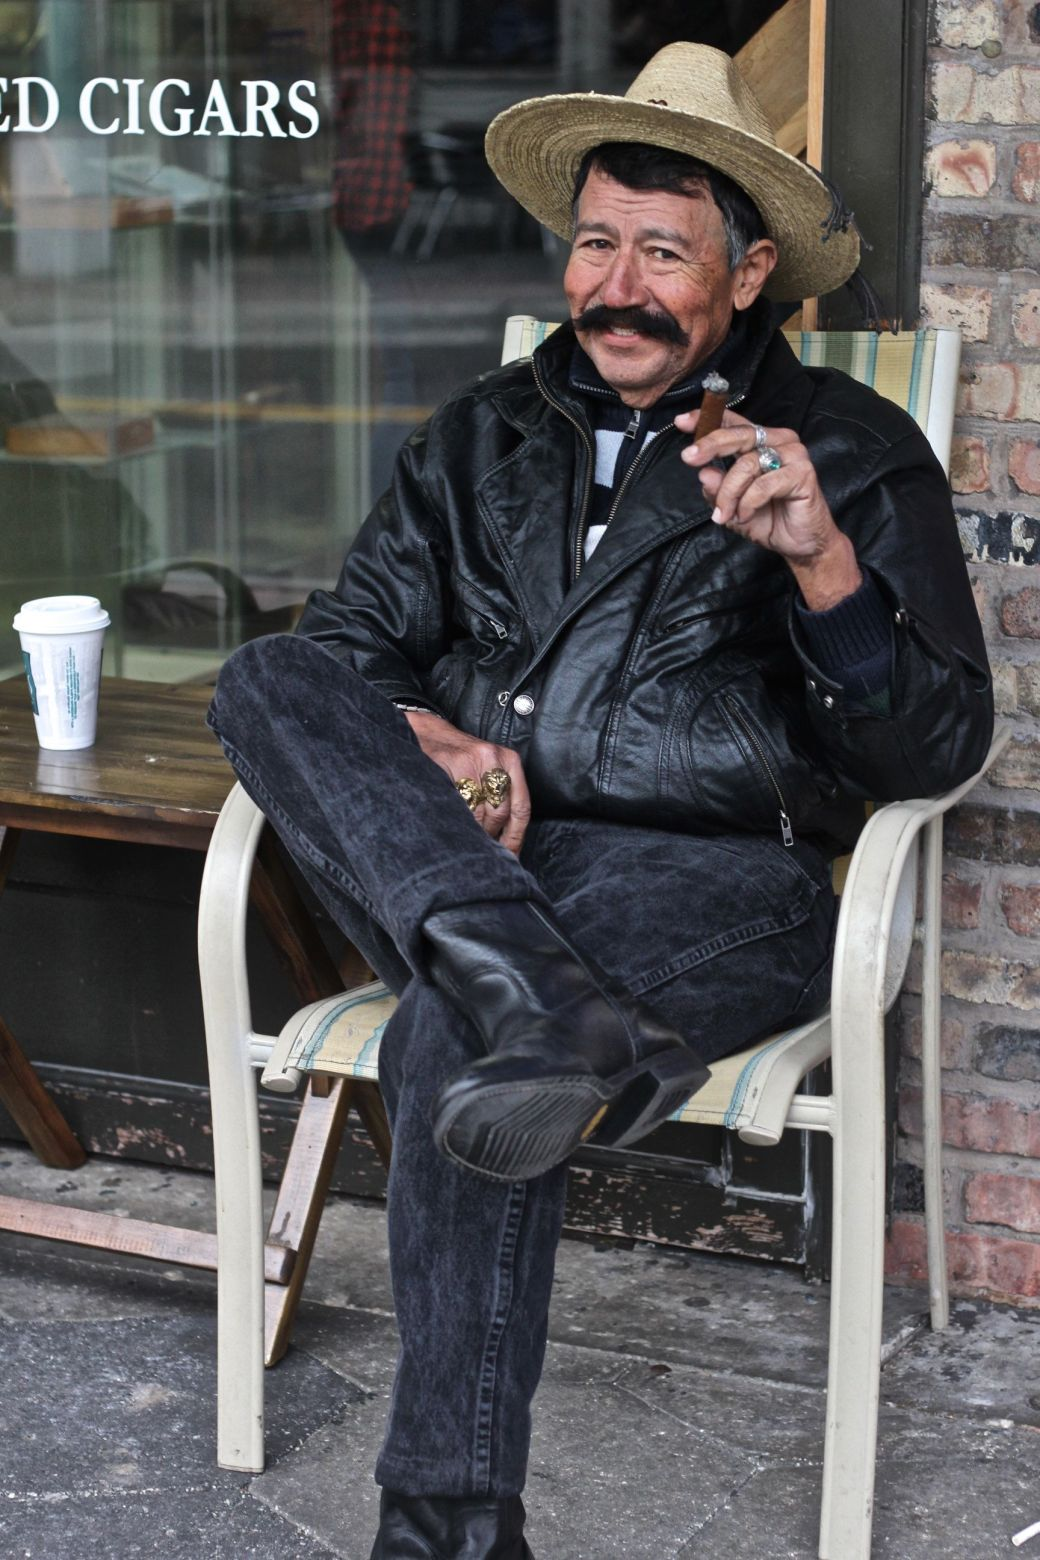 tampa-ybor-city-man-smoking-cigar